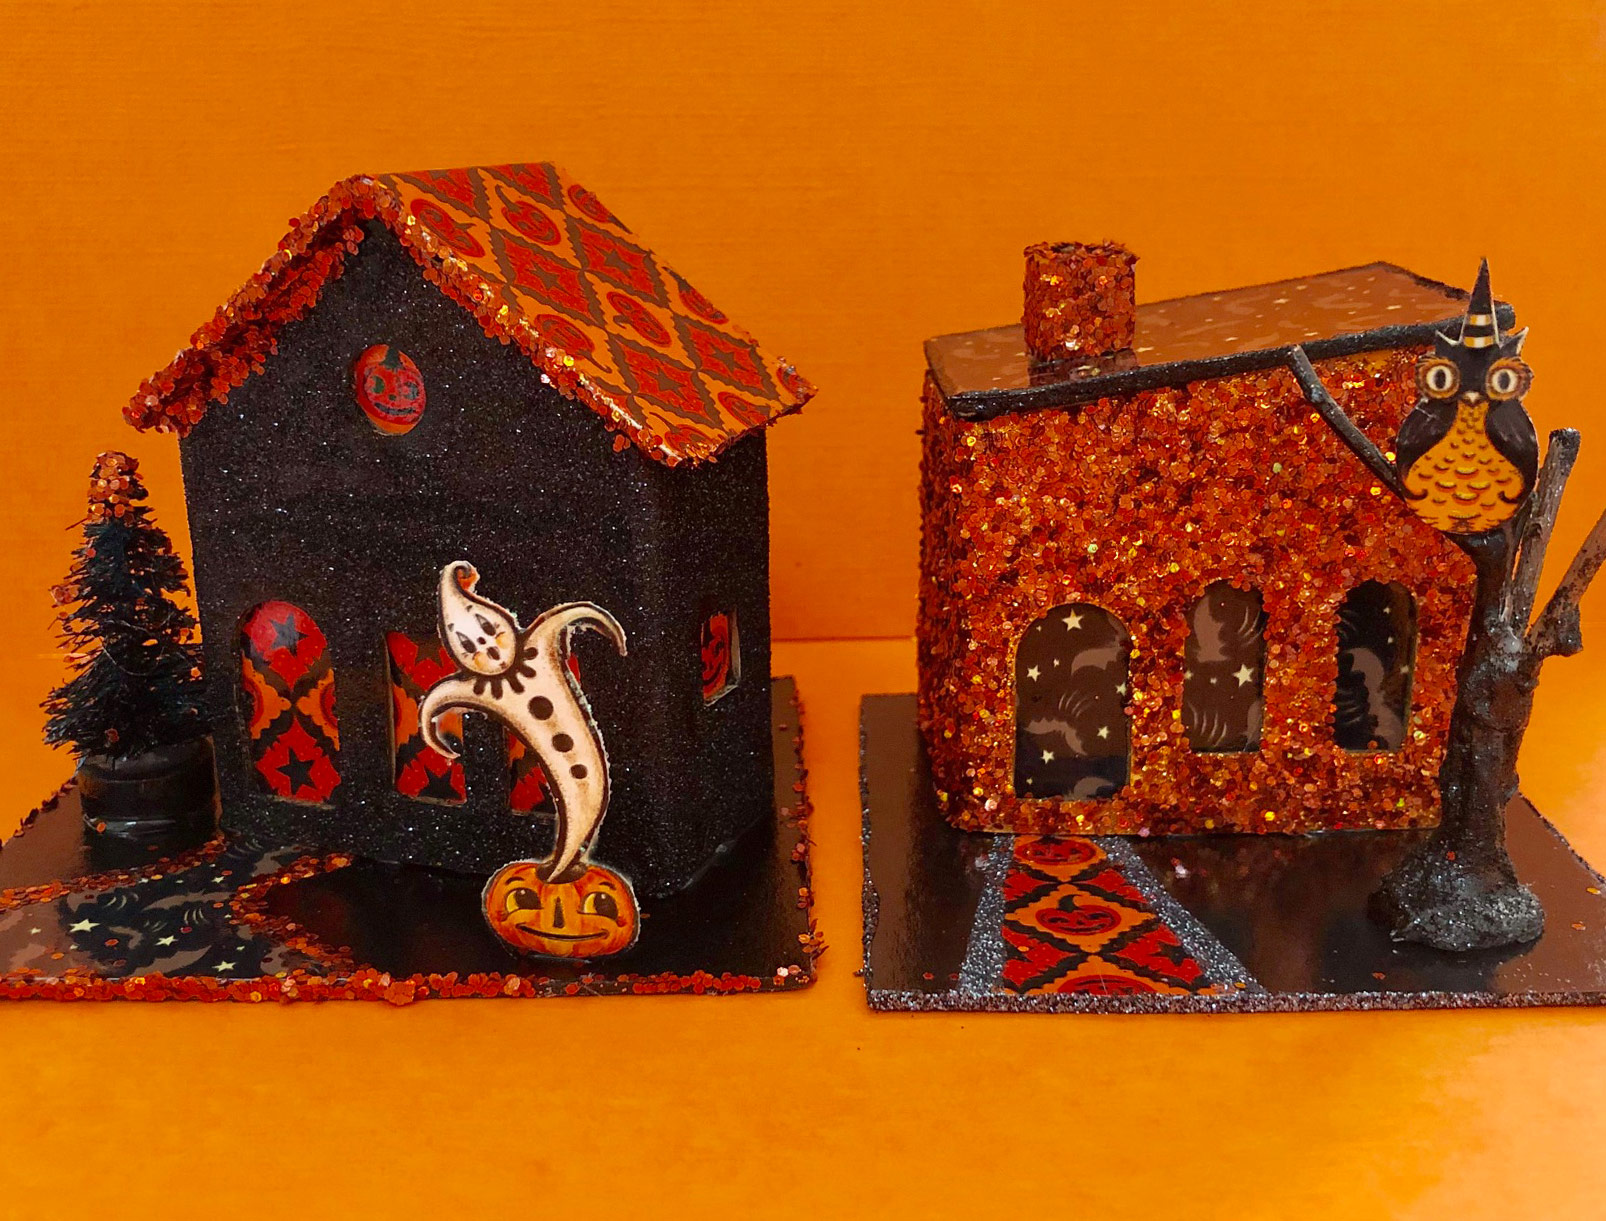 NEW Halloween Putz Houses handmade by Clara using Johanna's playful patterns and whimsical Halloween characters!